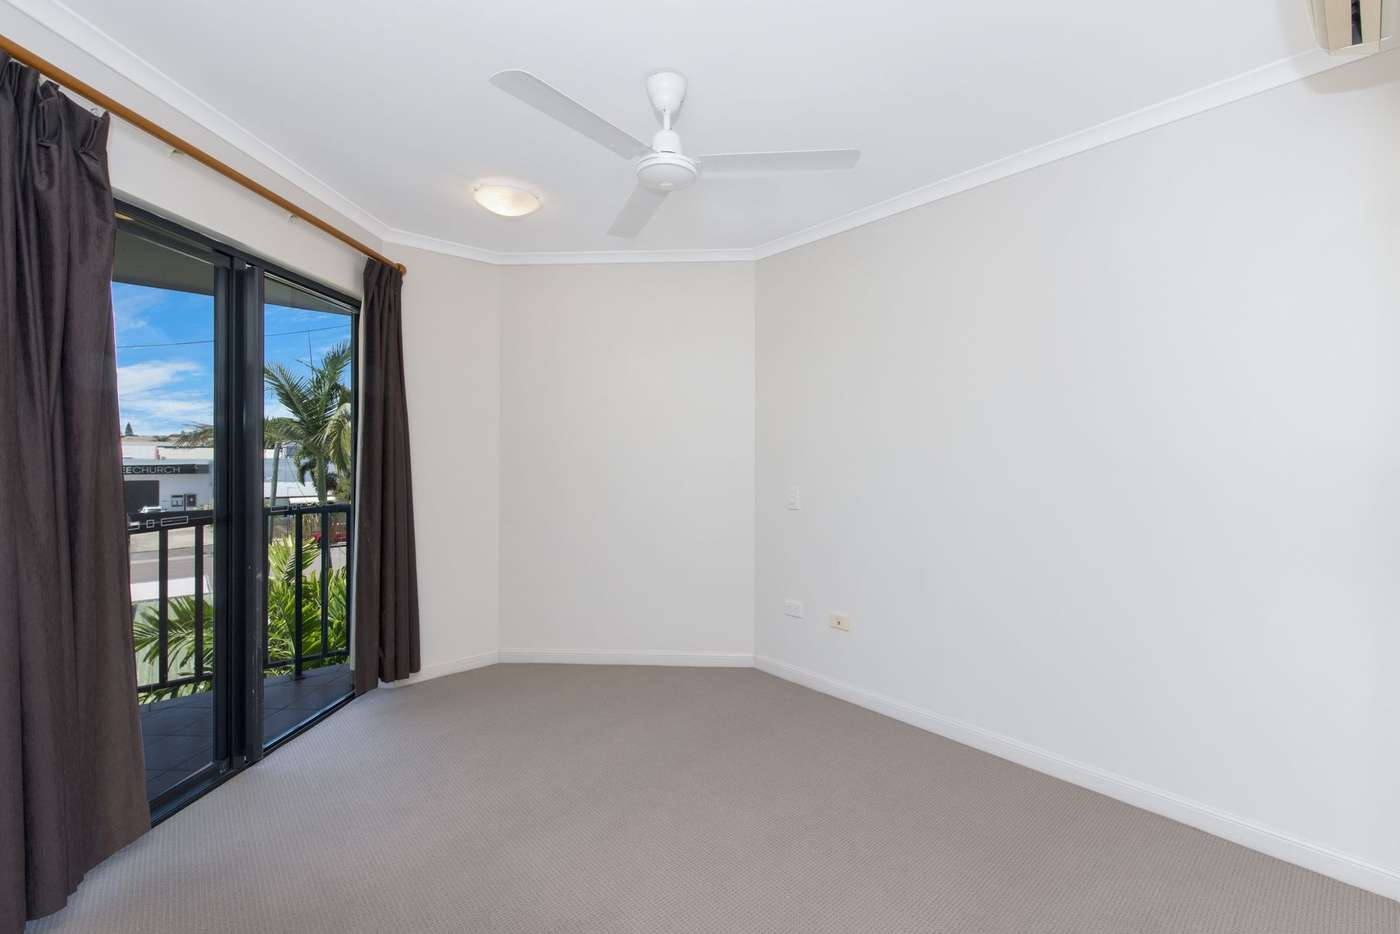 Sixth view of Homely apartment listing, 5/106 Eyre Street, North Ward QLD 4810